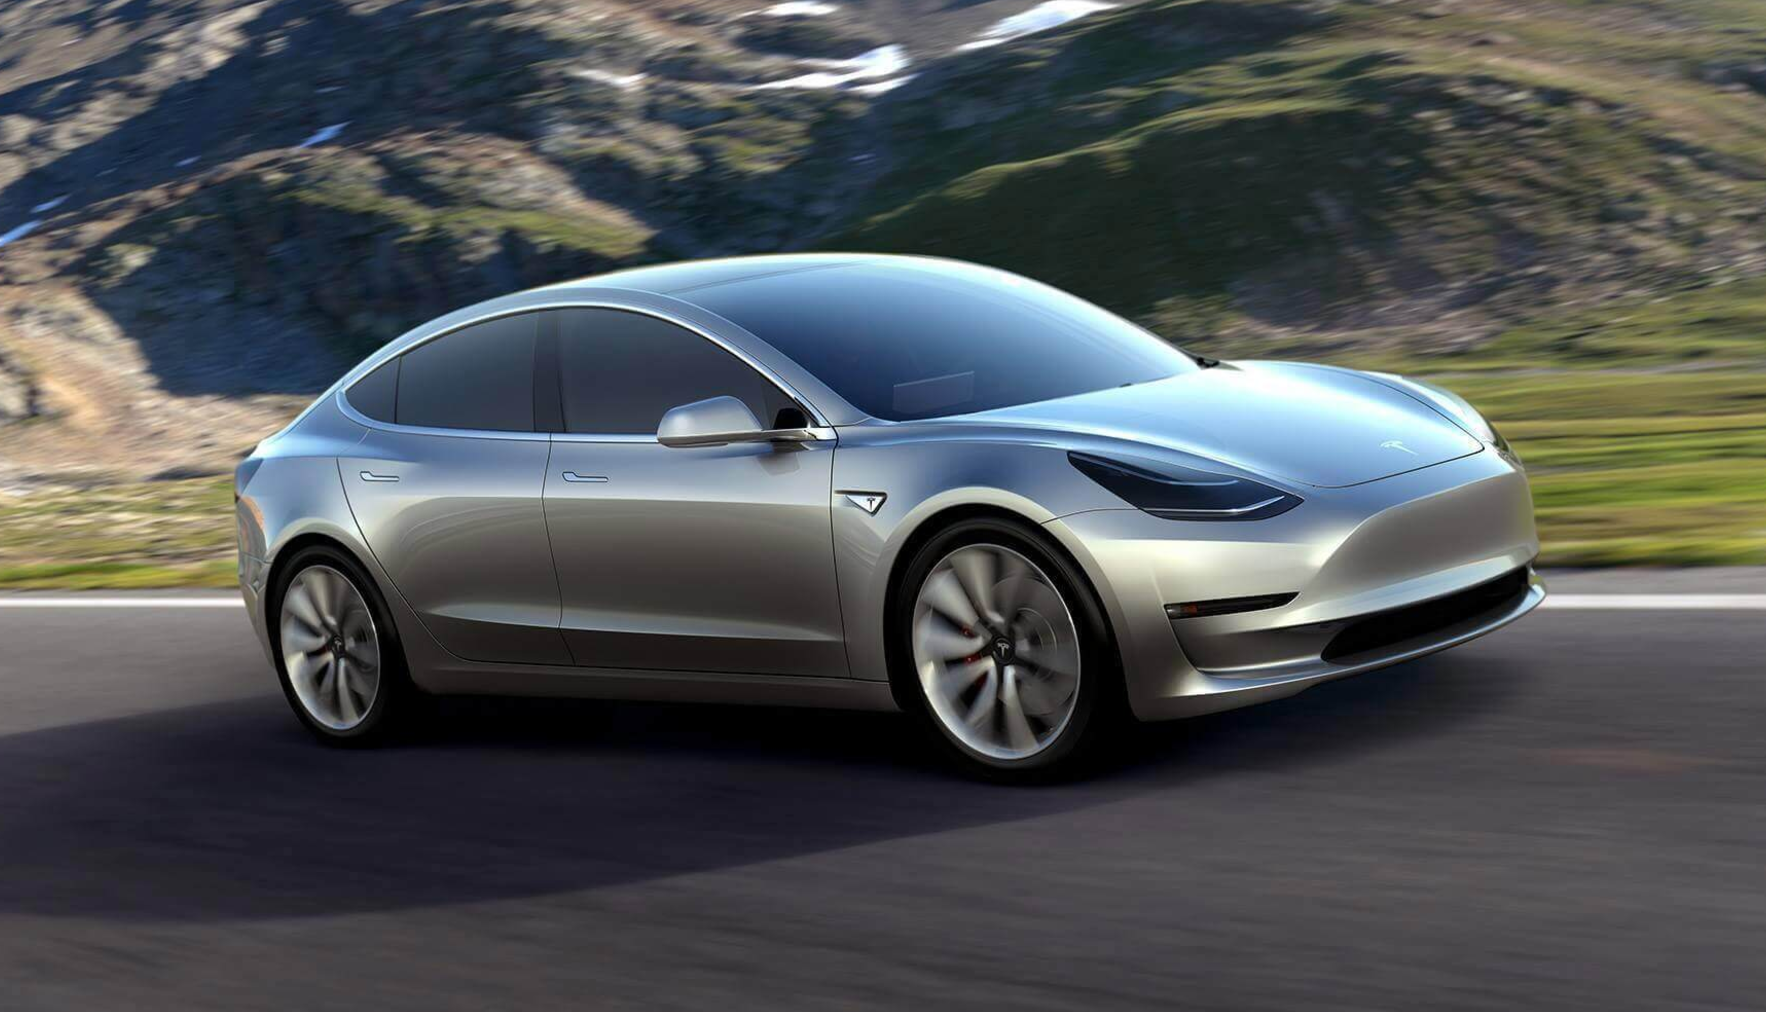 Tesla Model 3 makes 258 HP according to EPA documents